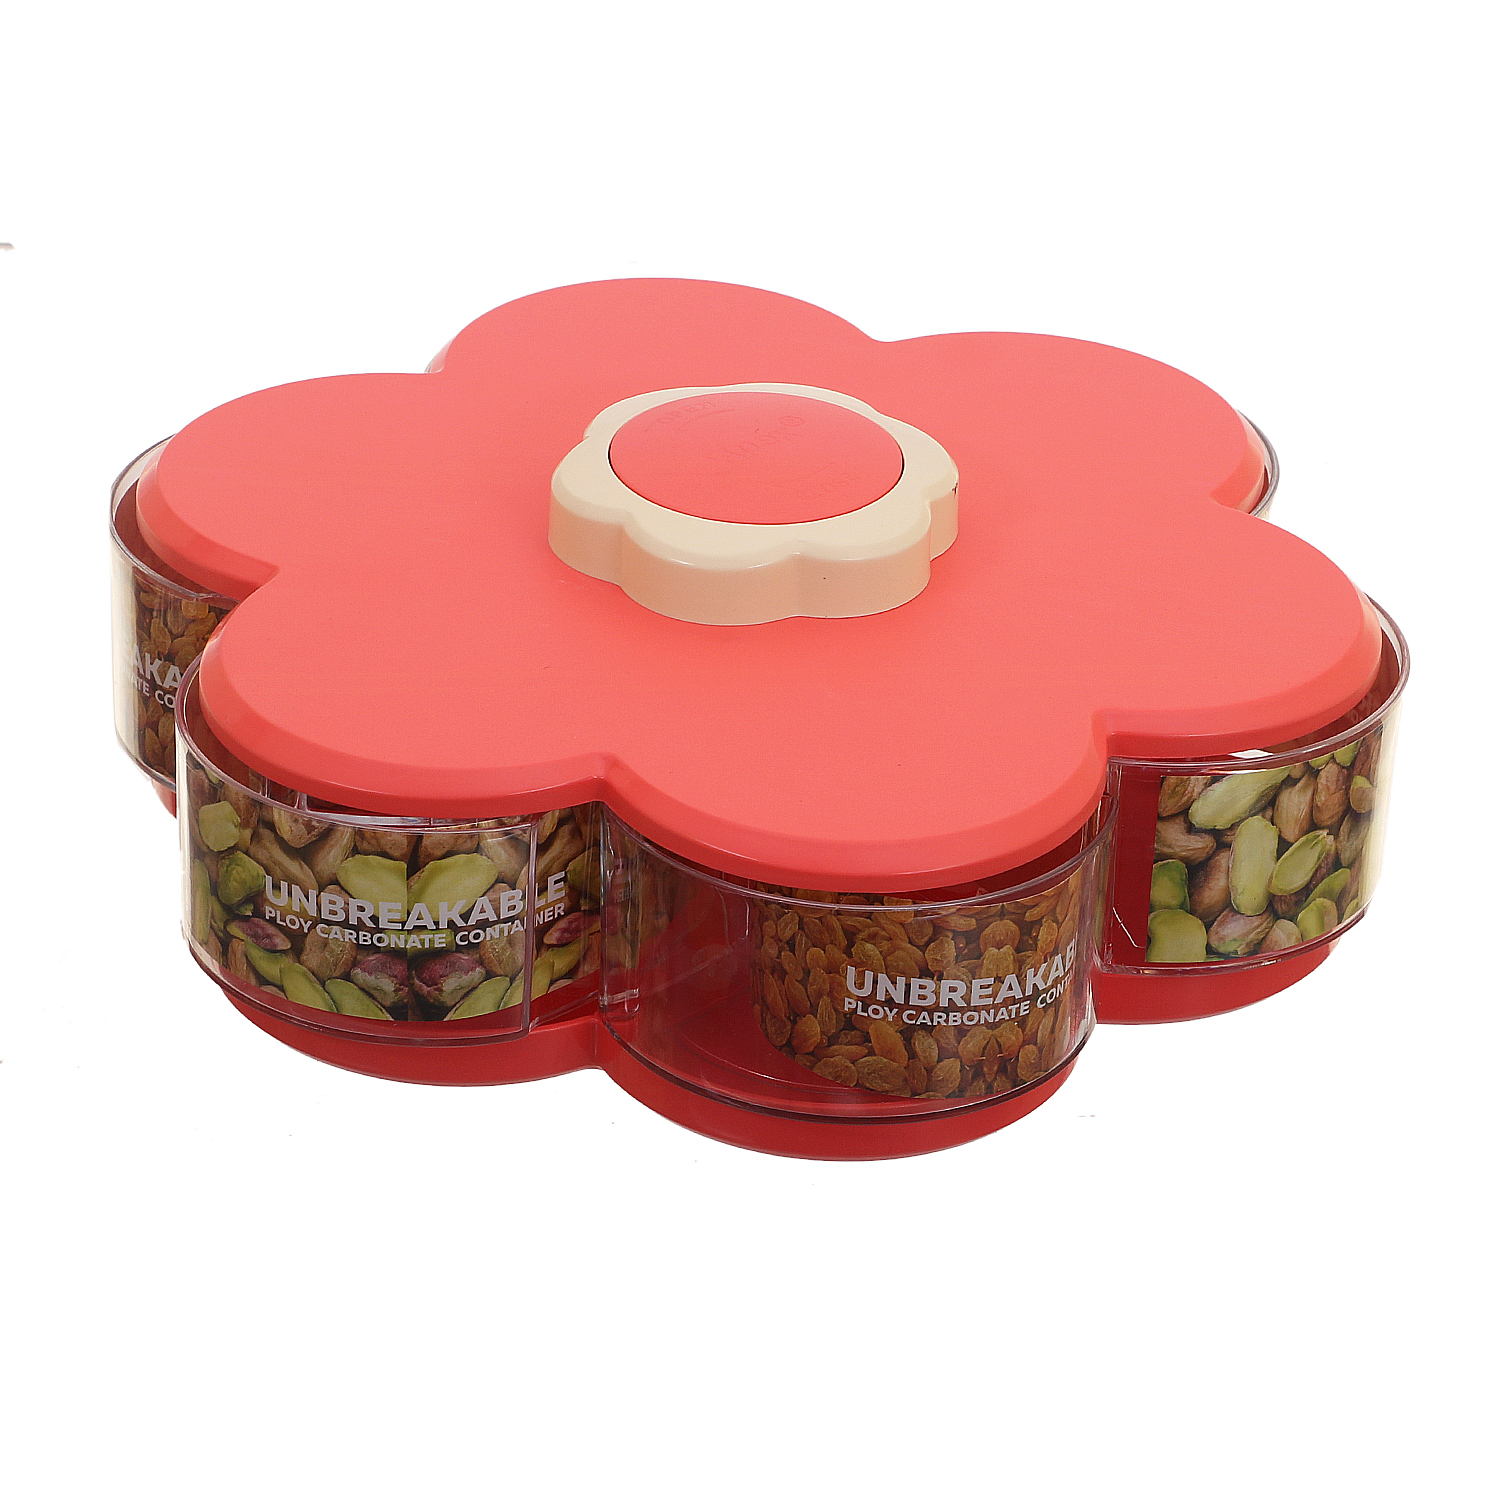 Kuber Industries 6 Sections Flower Candy Box Serving Rotating Tray Spice Jars Box Dry Fruit, Candy, Chocolate, Snacks Storage Box Home Kitchen (Pink) - CTKTC30676